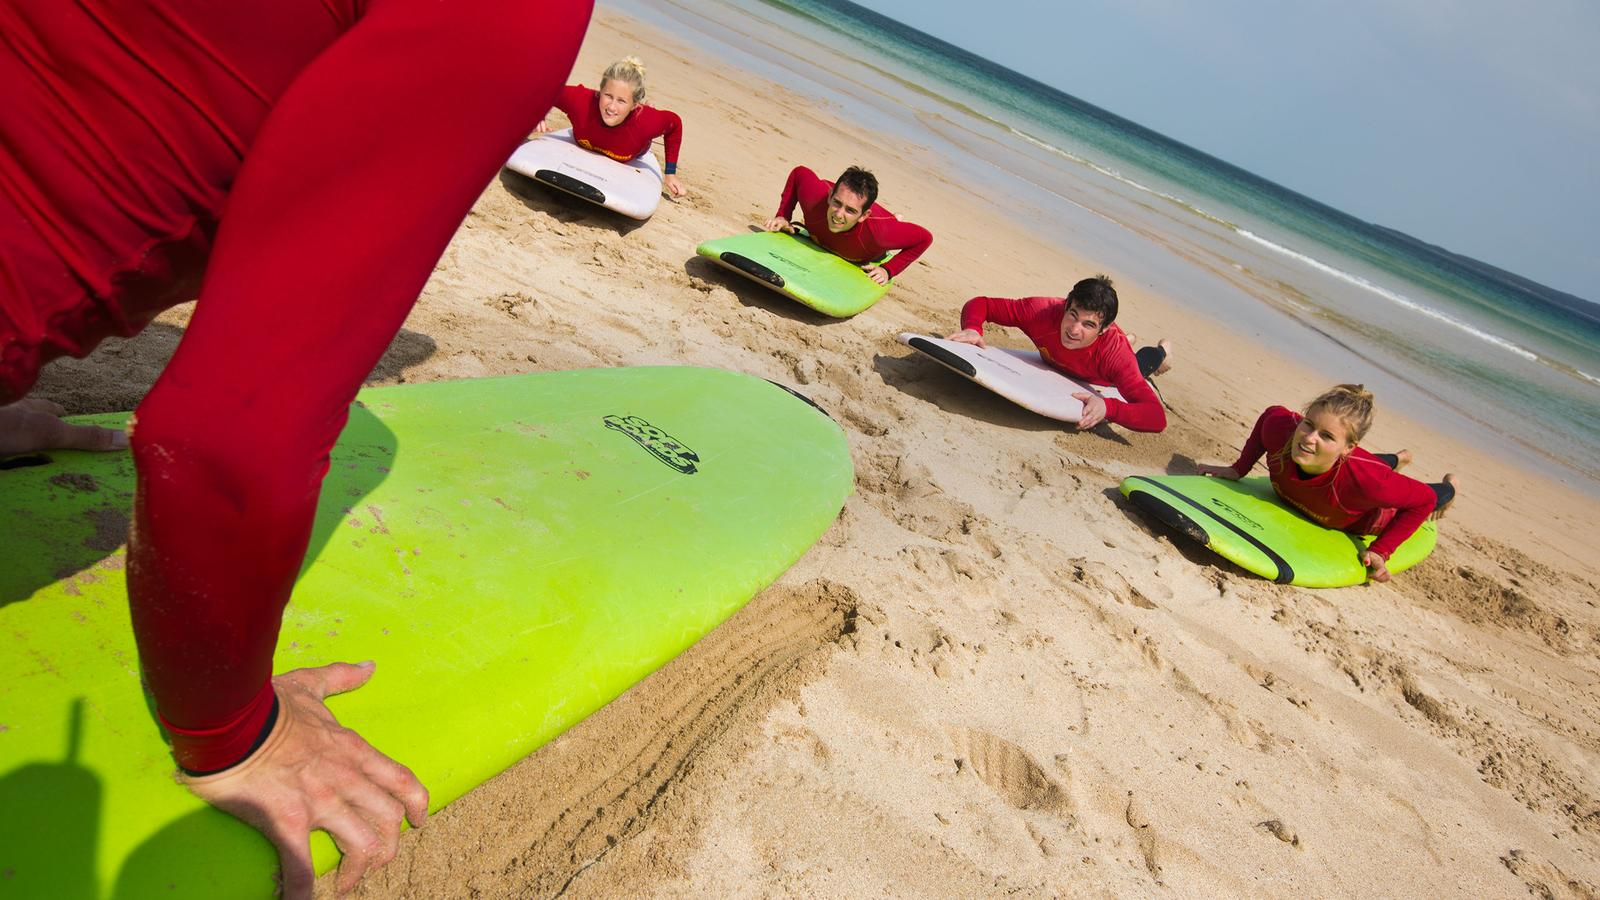 A group of travellers take a surf lesson on a sandy beach in Sydney, Australia